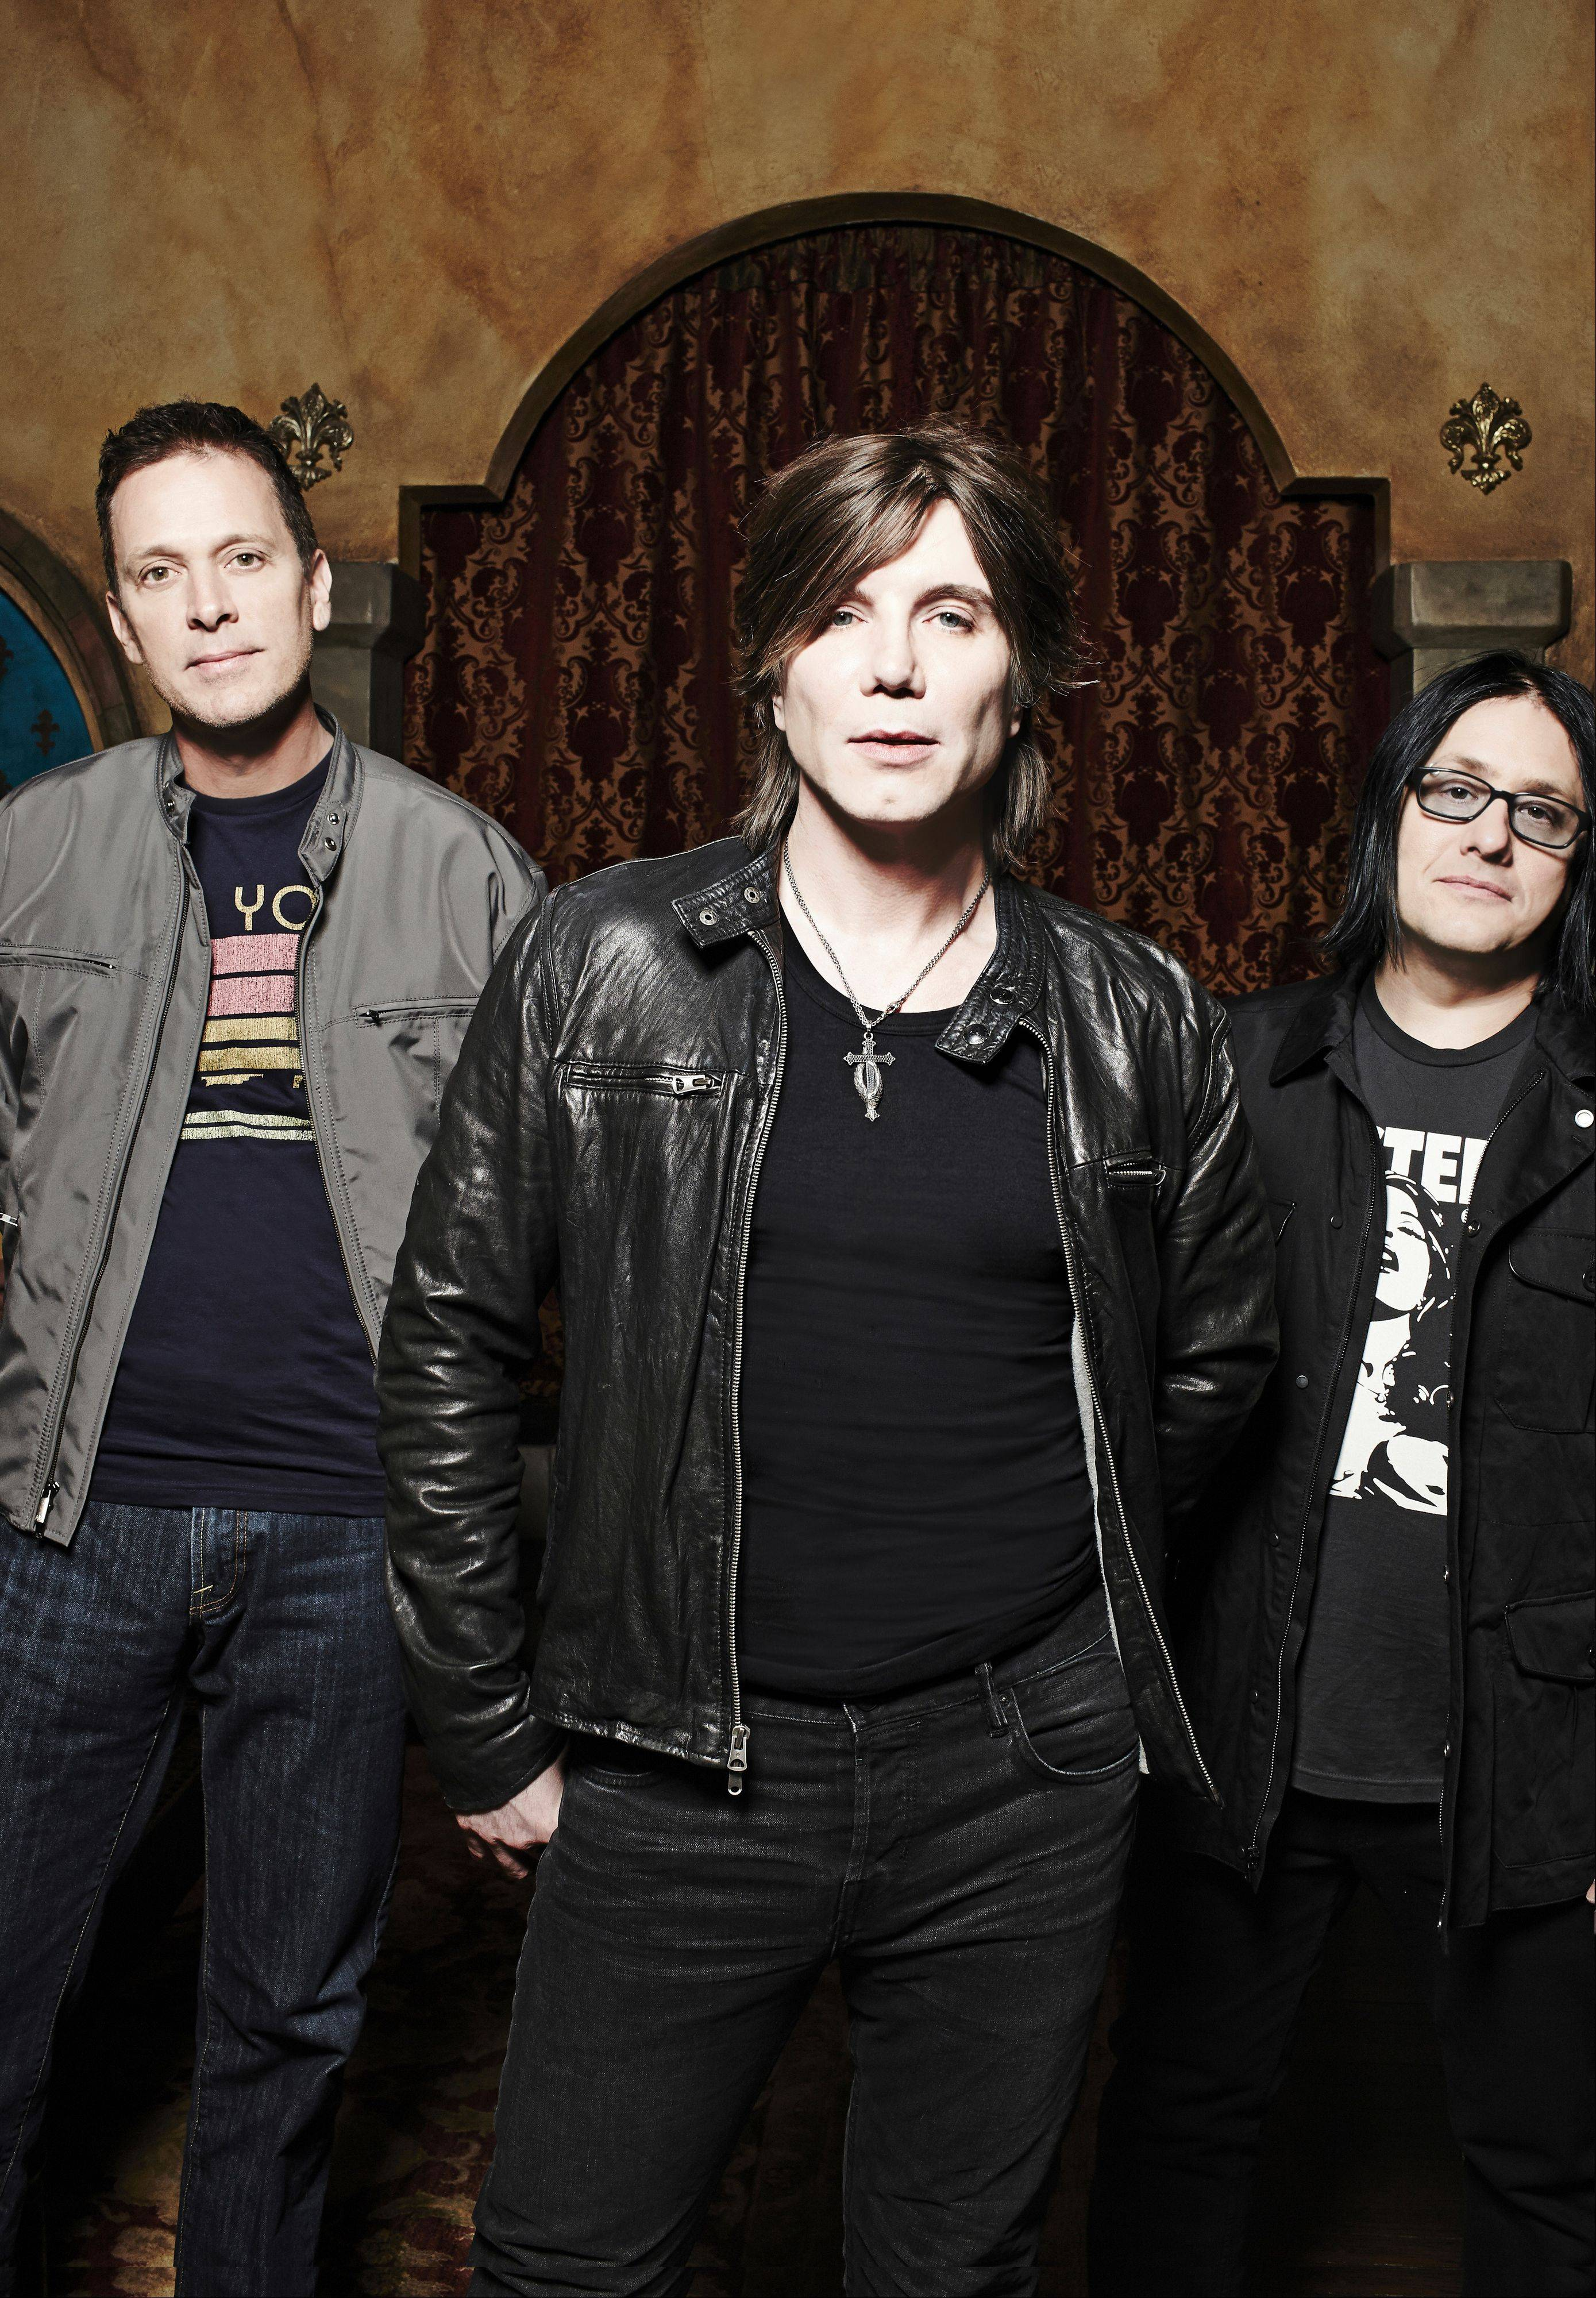 The Goo Goo Dolls will perform at 8 p.m. Saturday, Aug. 31, at the Last Fling festival in downtown Naperville.